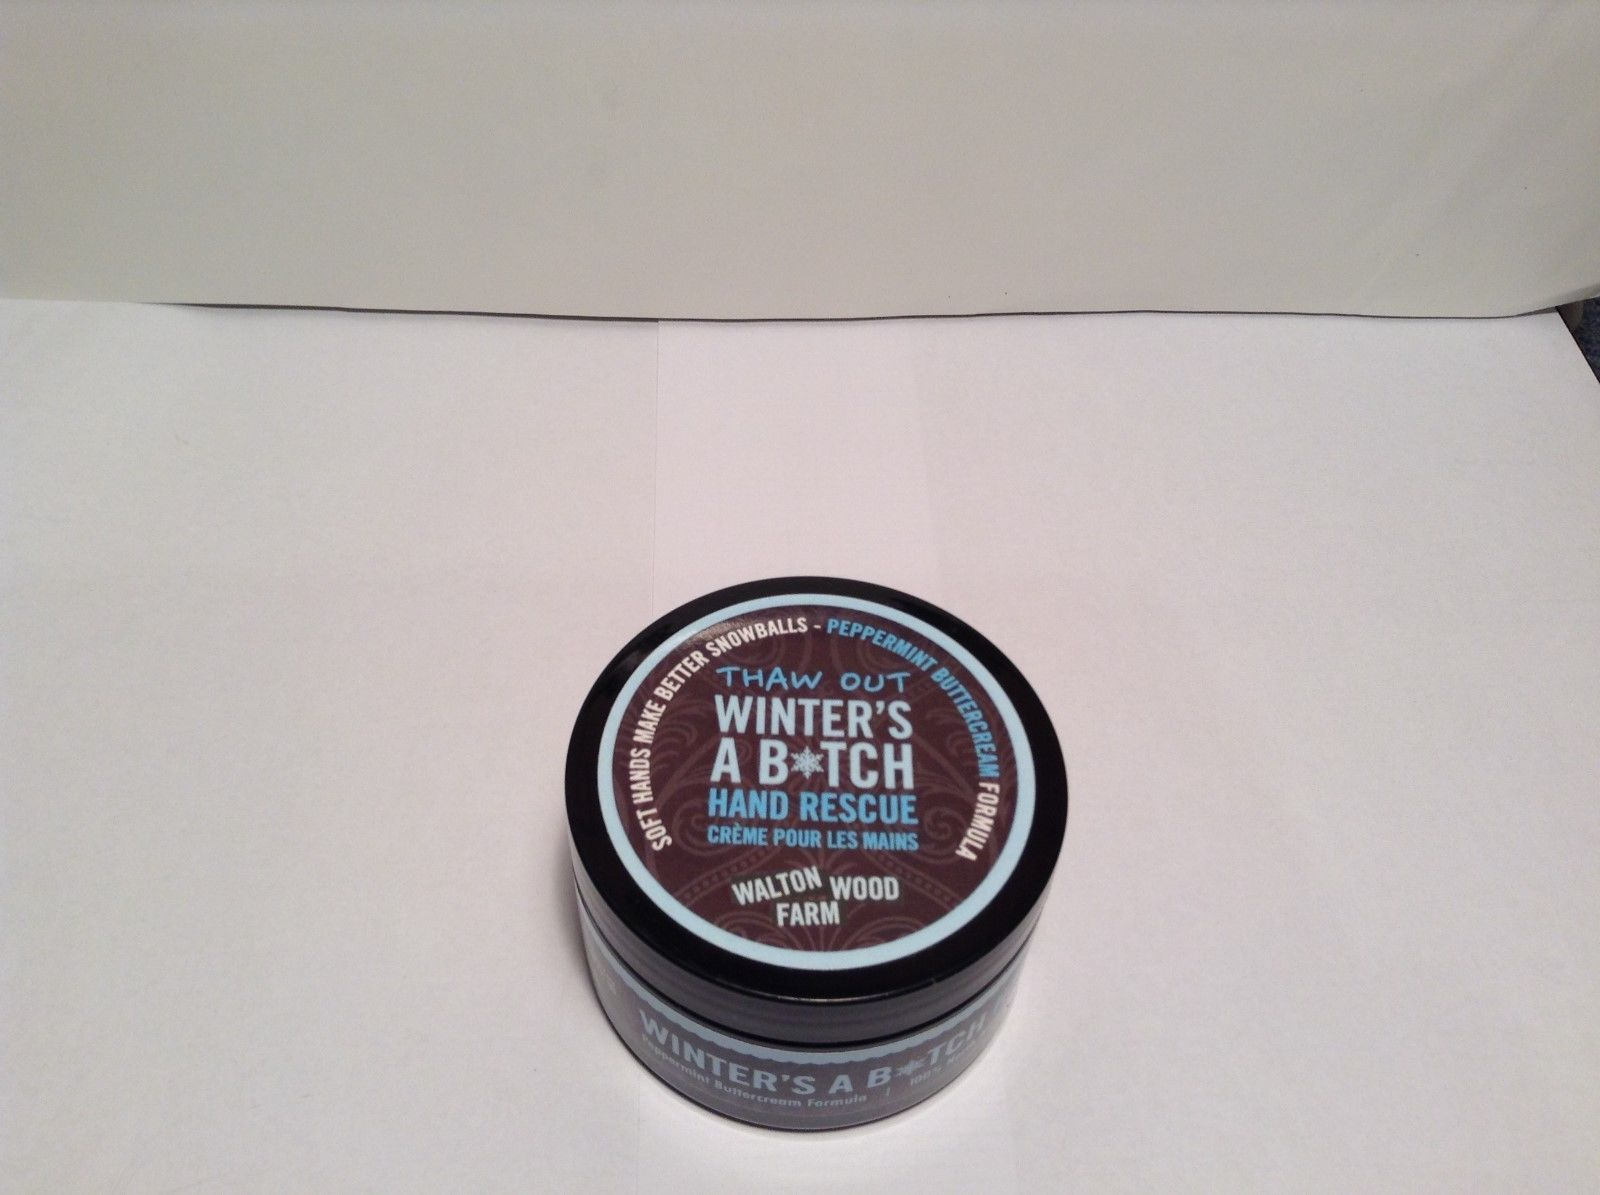 NEW Winter's A B*tch 4fl oz Peppermint Hand Rescue Buttercream